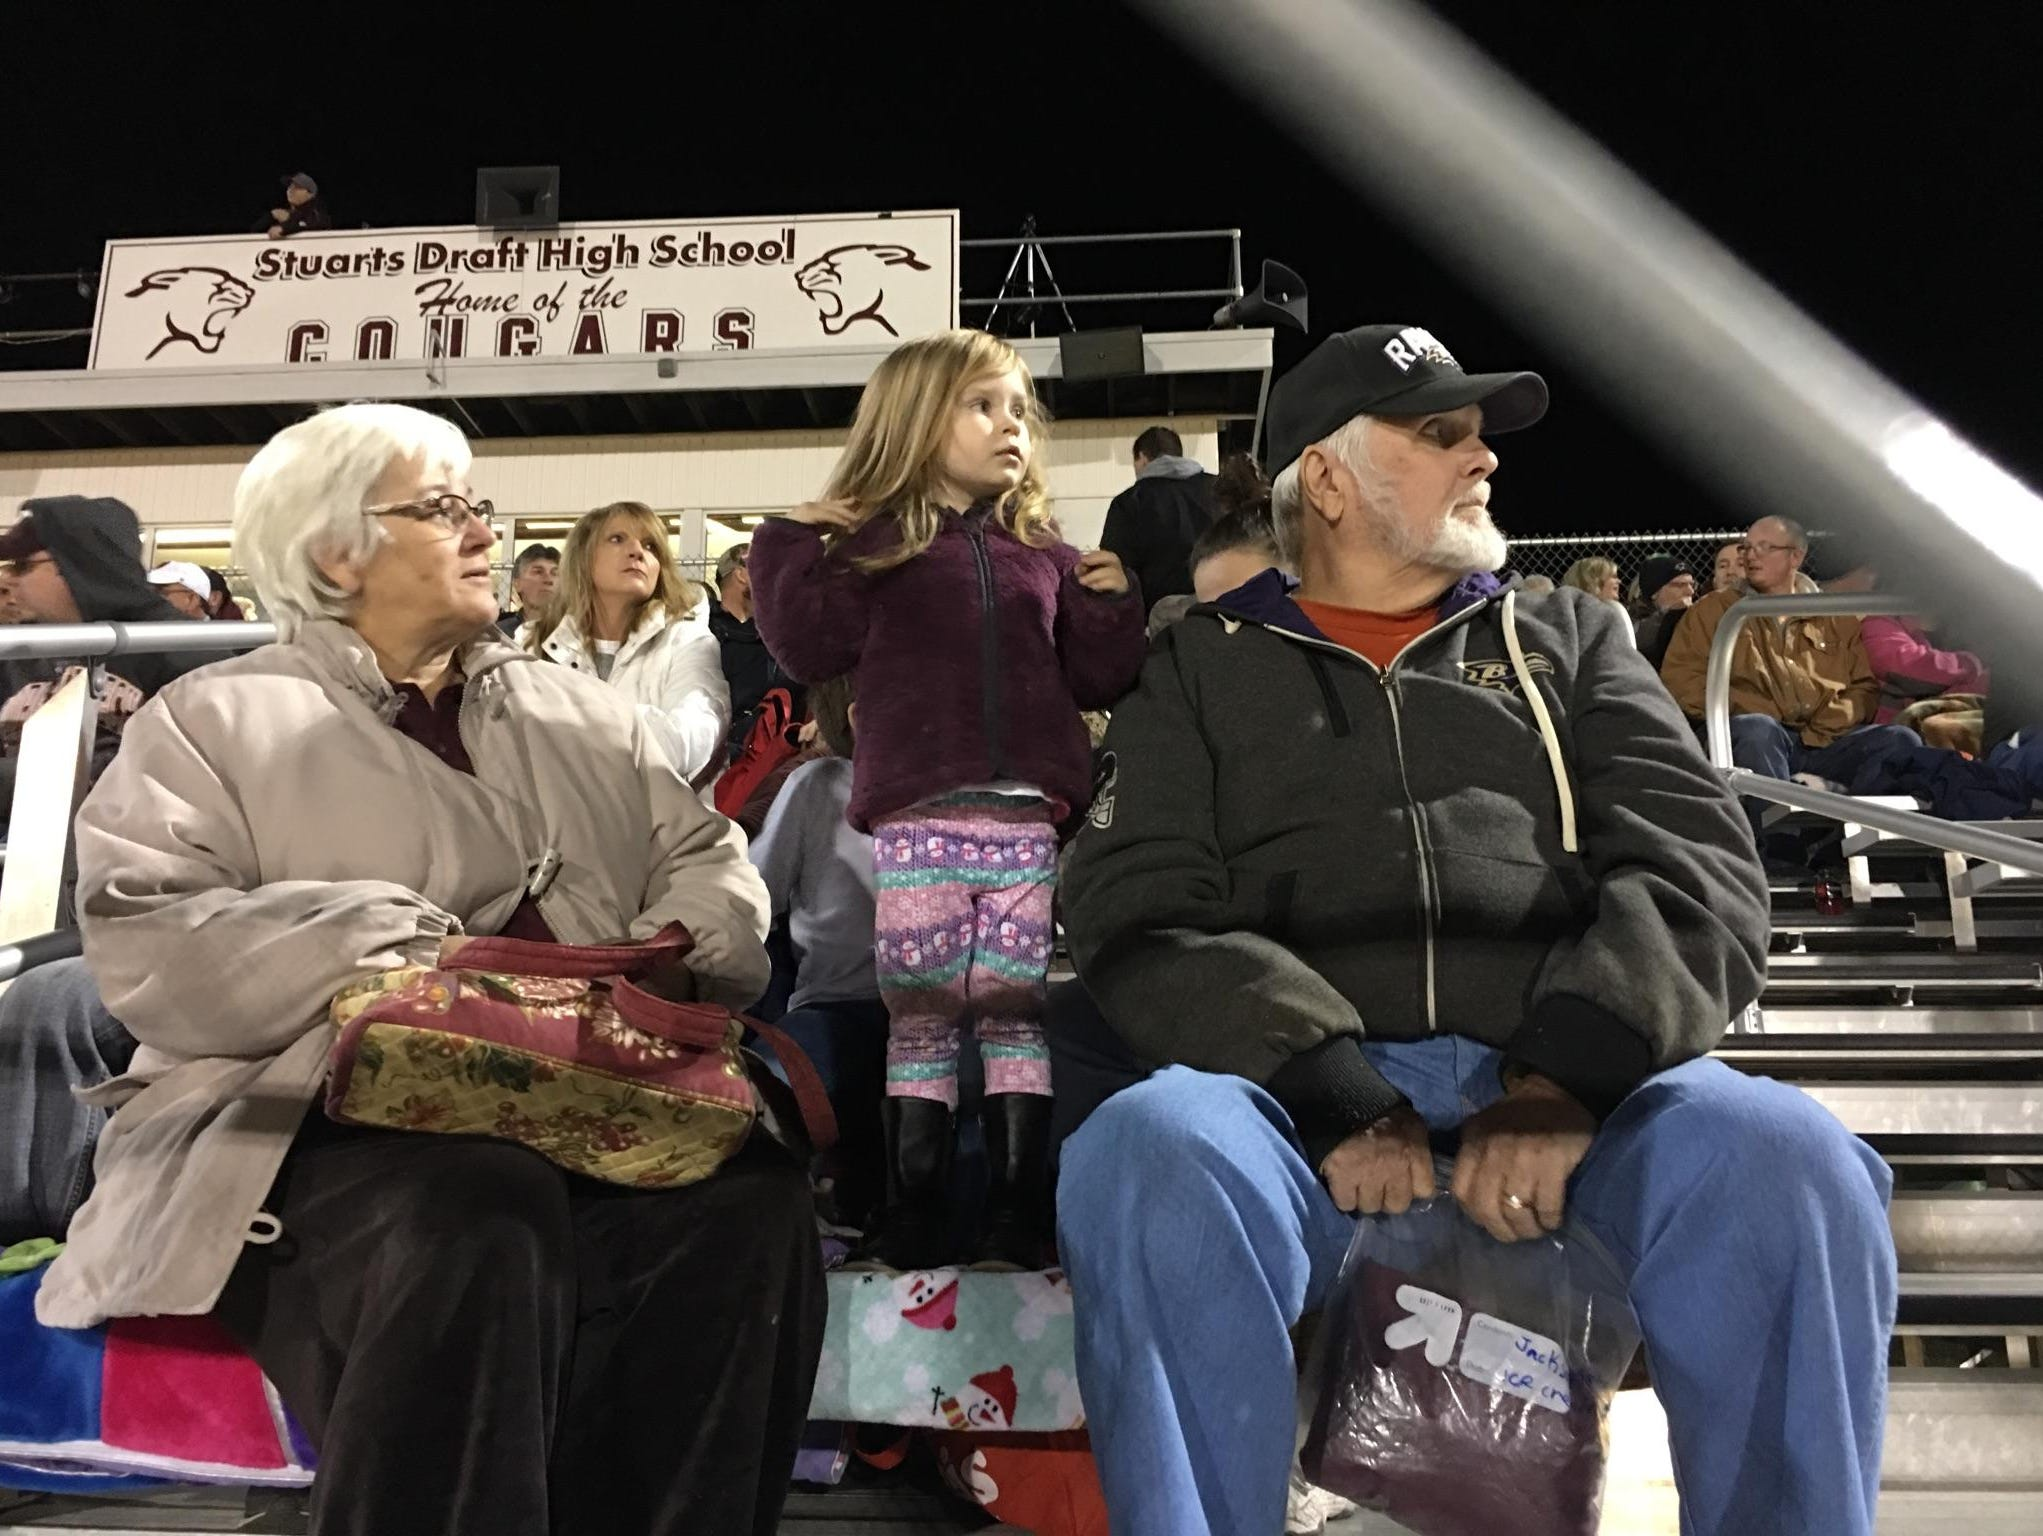 Fans await the start of the Stuarts Draft playoff game Friday night, Nov. 25.